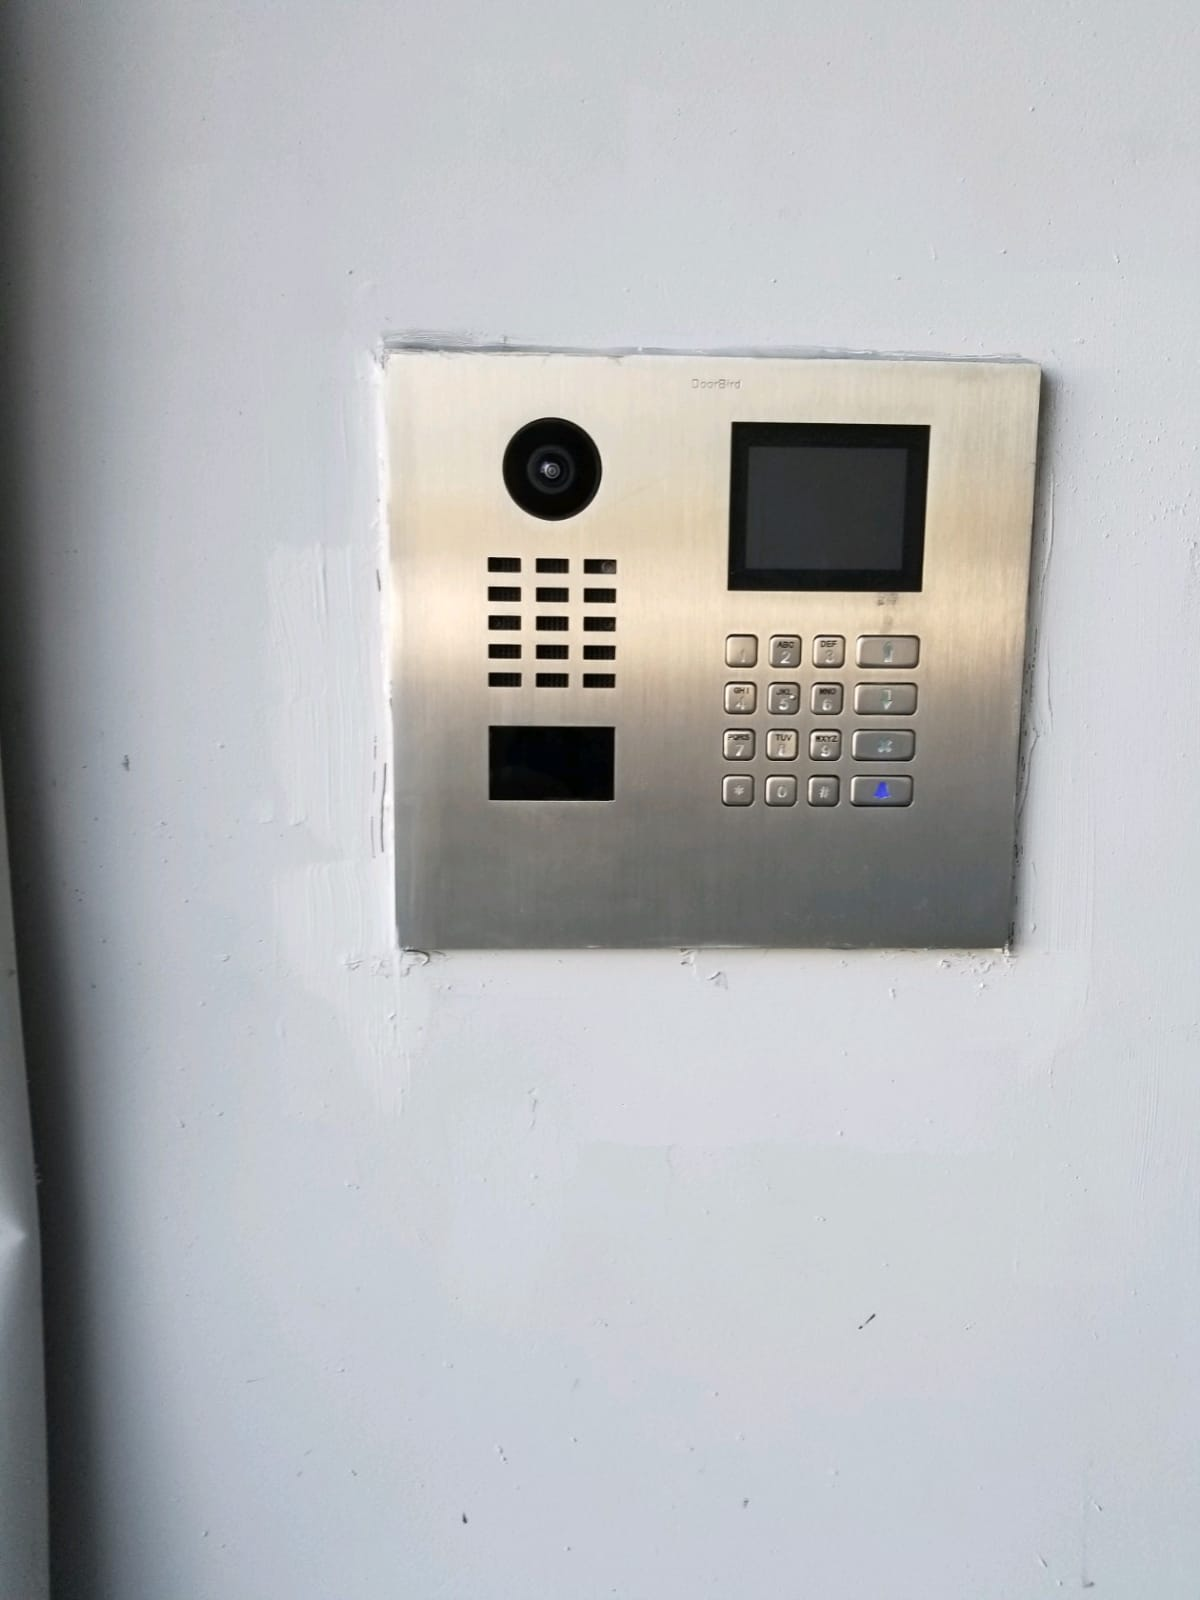 Onboard IT Tech - A One-Stop-Shop For Top-Notch Intercom Installation Los Angeles Services For Safer Spaces